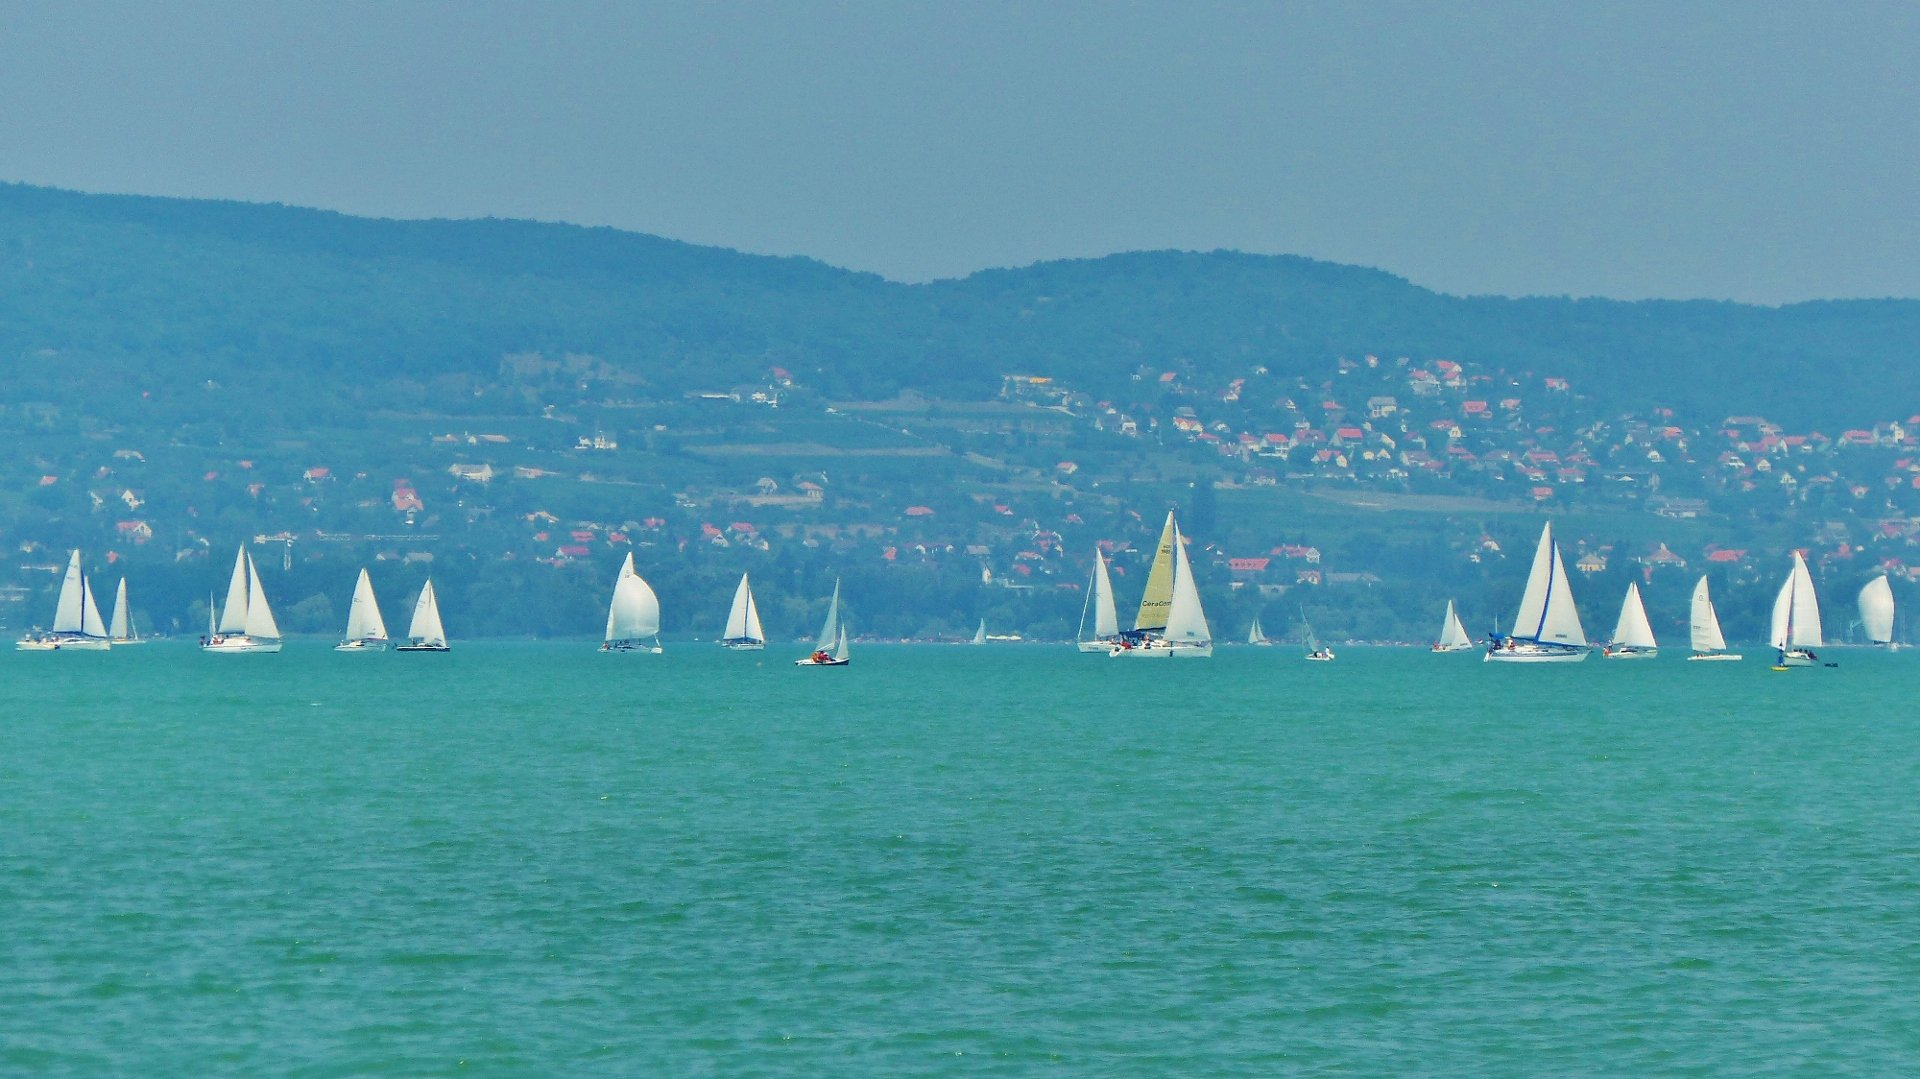 Zamardi on Lake Balaton 2020